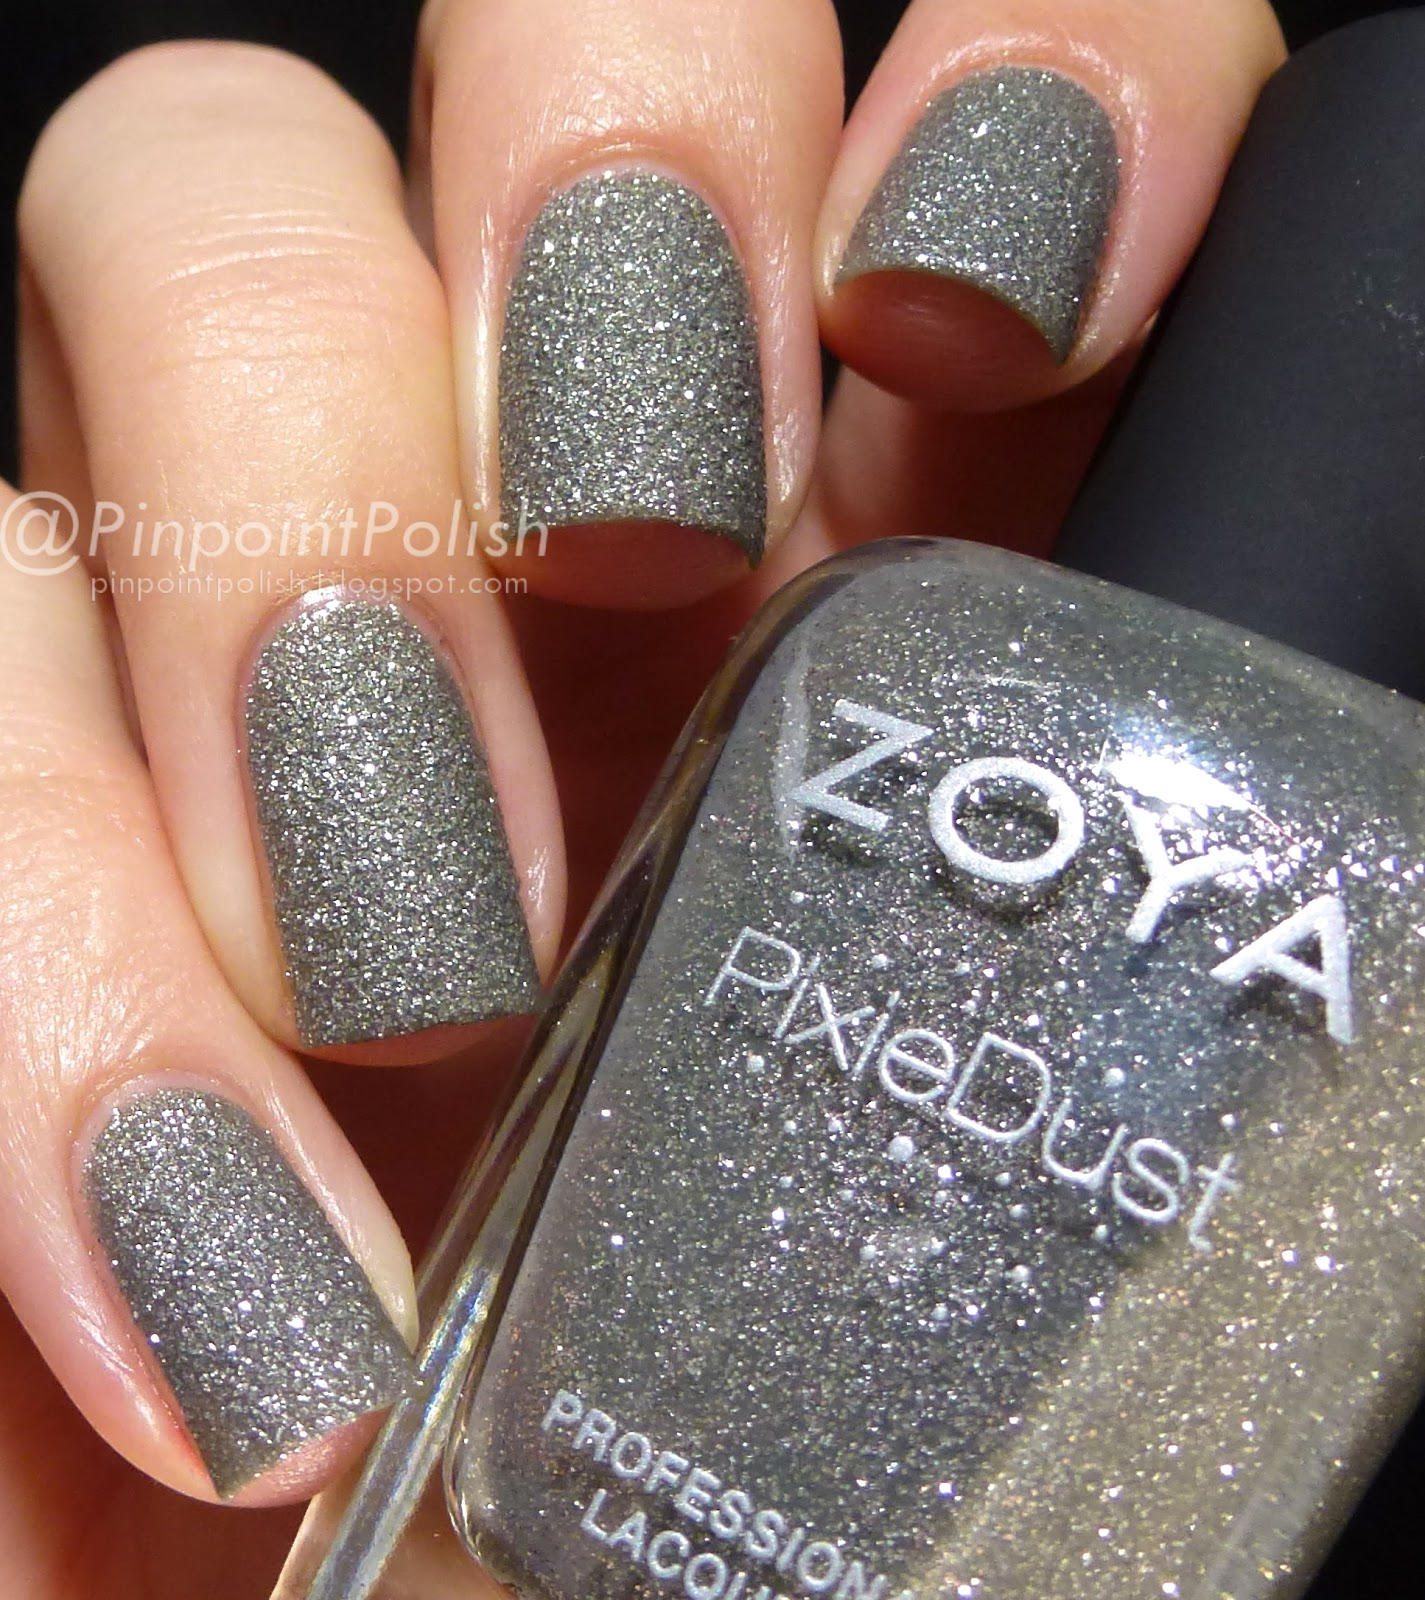 London, Zoya, Pixie Dust, swatch